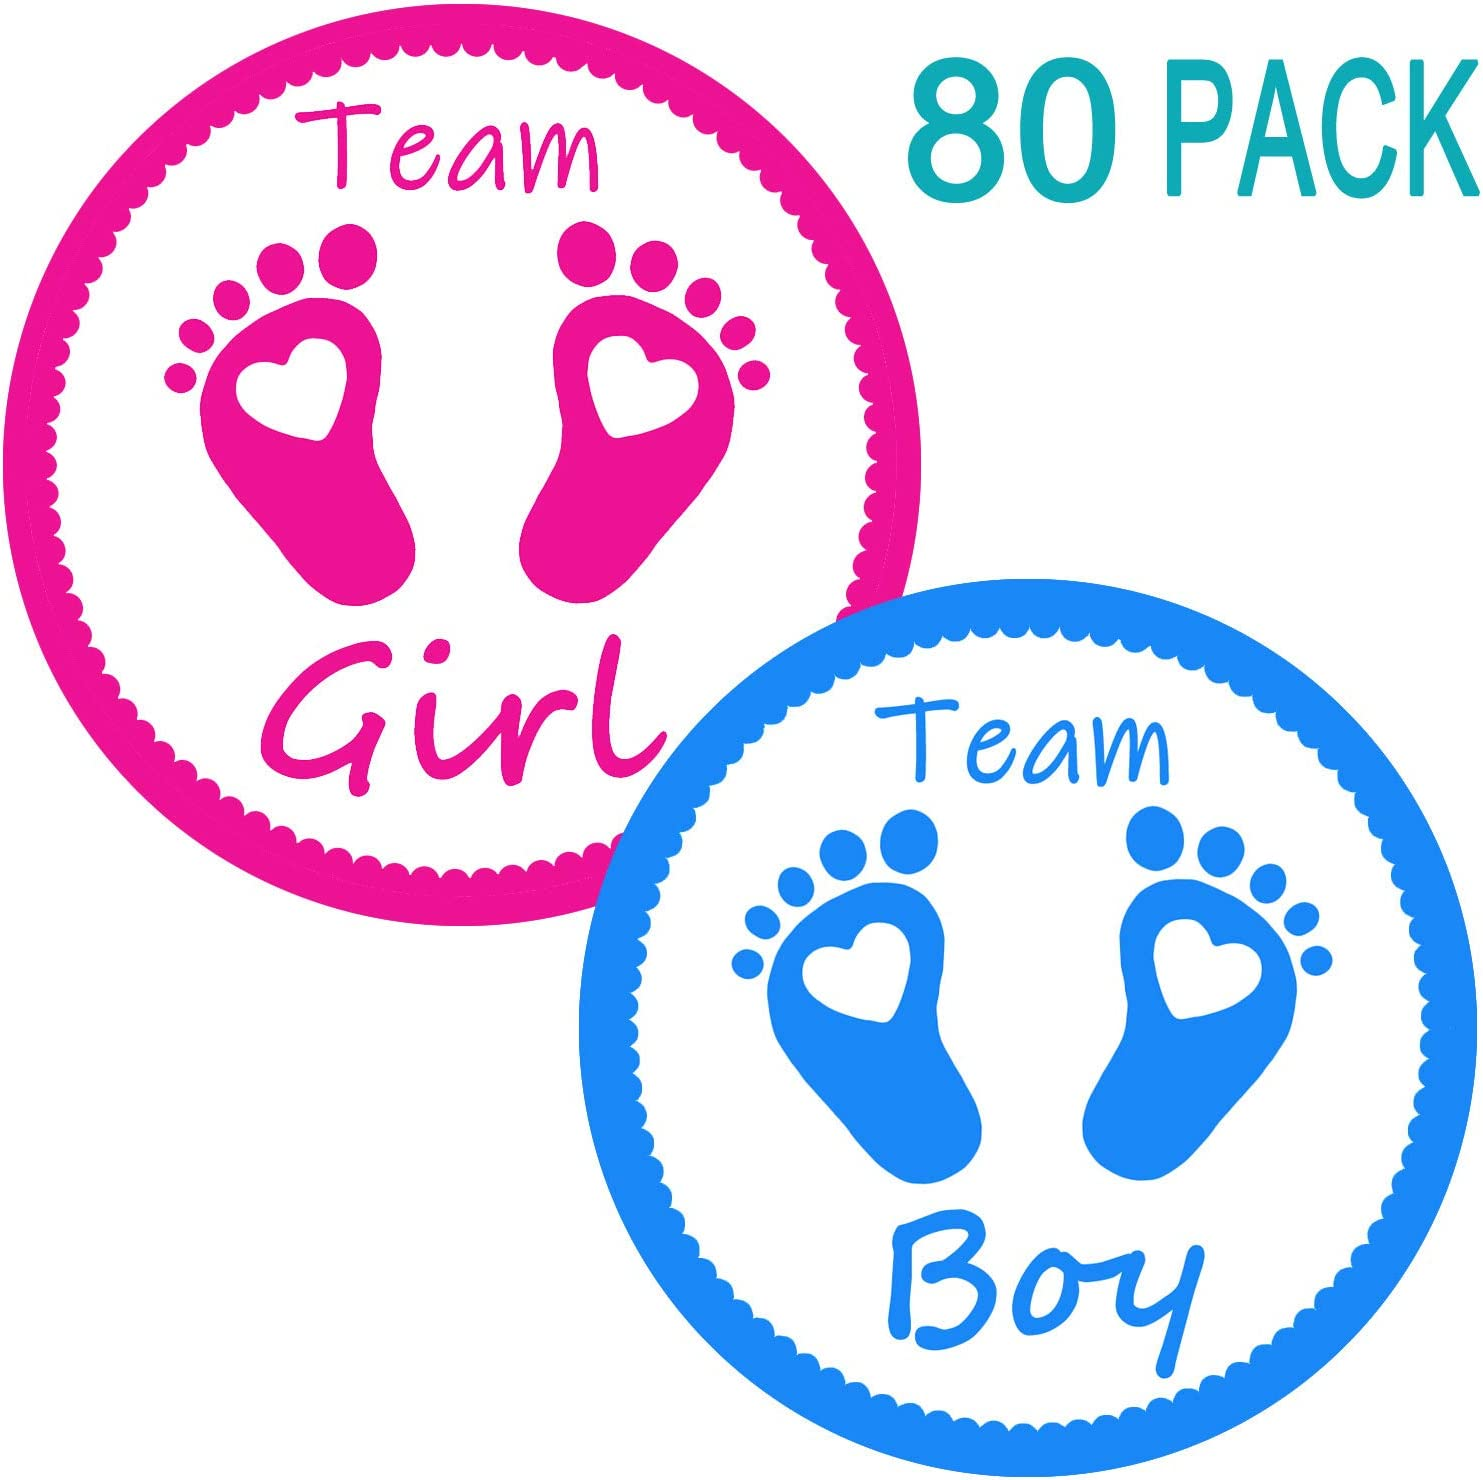 Gender Reveal Party Labels Baby Shower Voting Stickers 2.36 Inches Pink and Blue 120 Pack Team Girl /& Team Boy Stickers for Team Baby Shower Party Favors 60 of each design